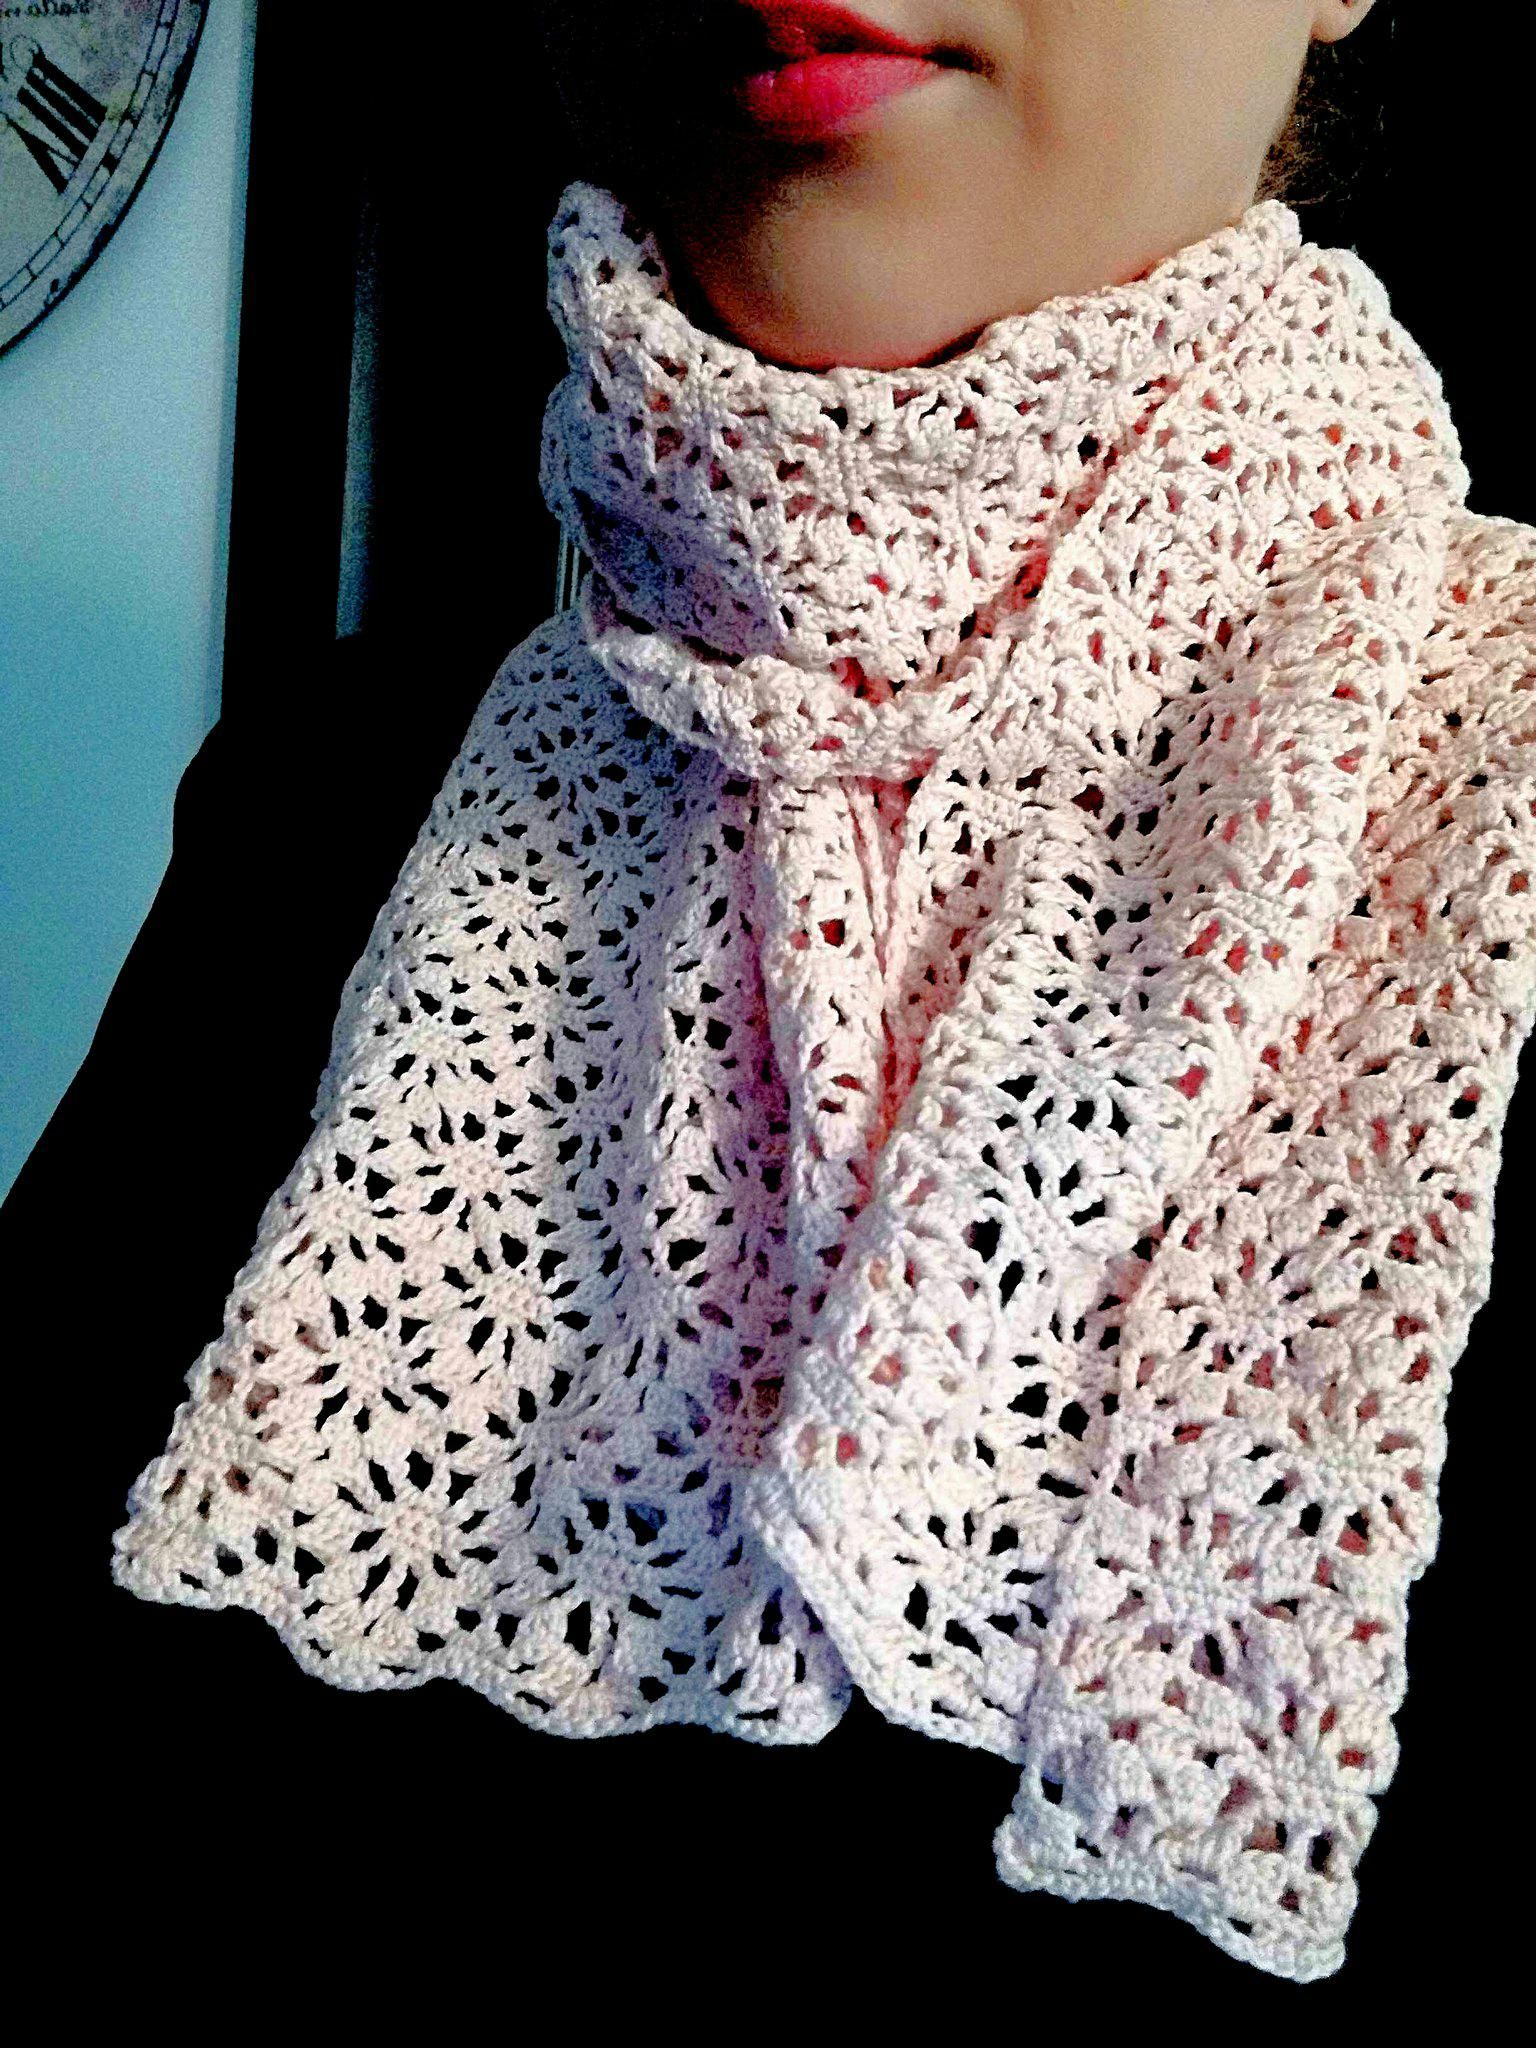 How To Crochet A Lace Scarf Free Pattern Crochet Scarves Hats